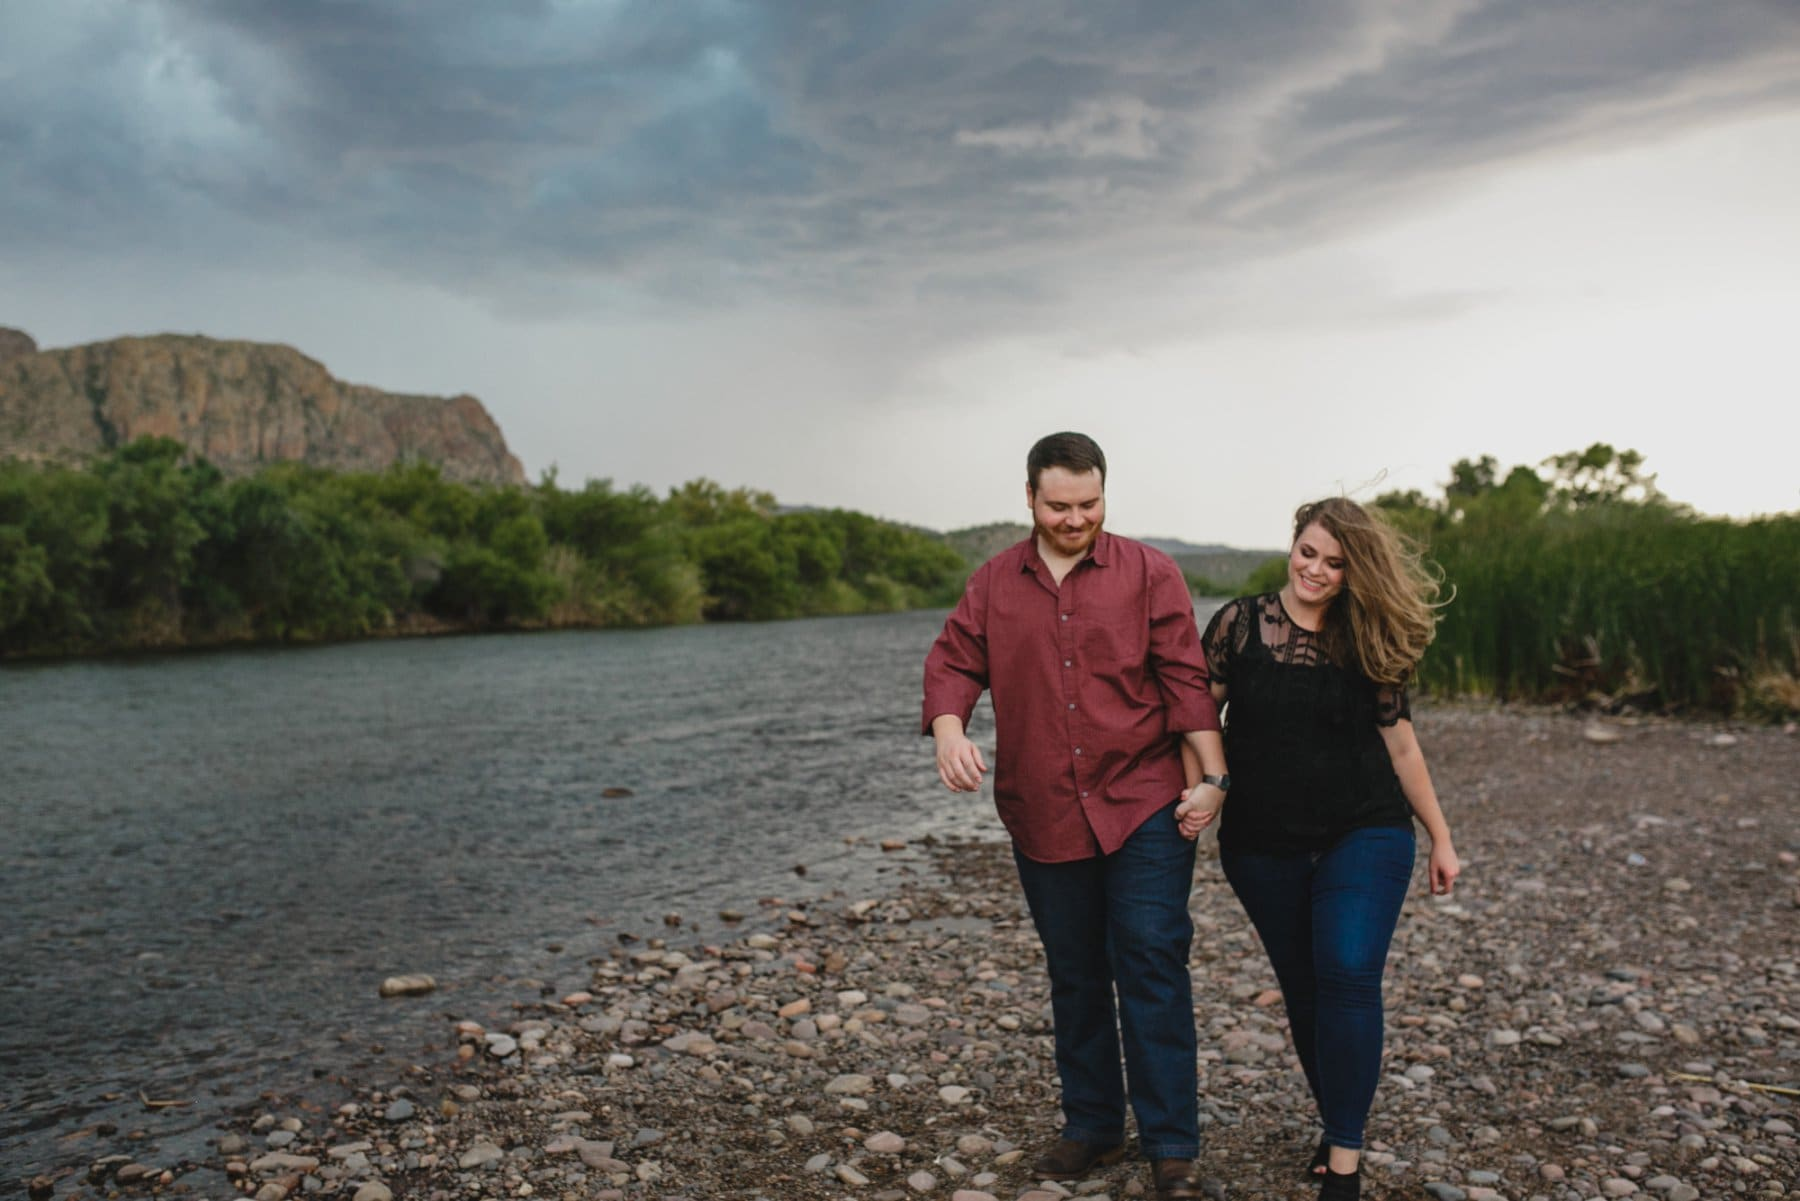 engagement photos in a monsoon storm in Arizona